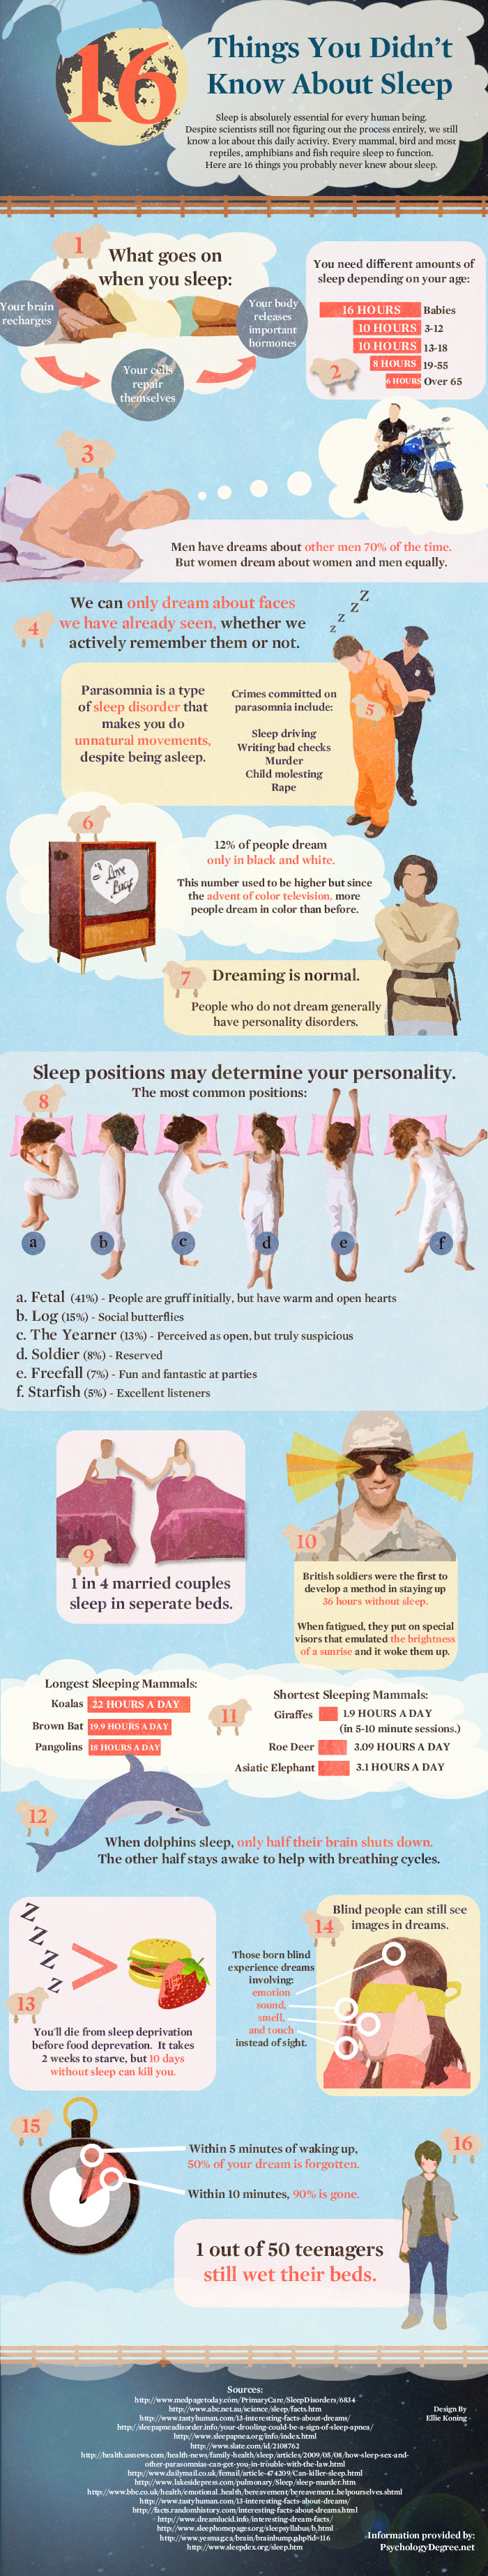 16 Things You Didn't Know About Sleep